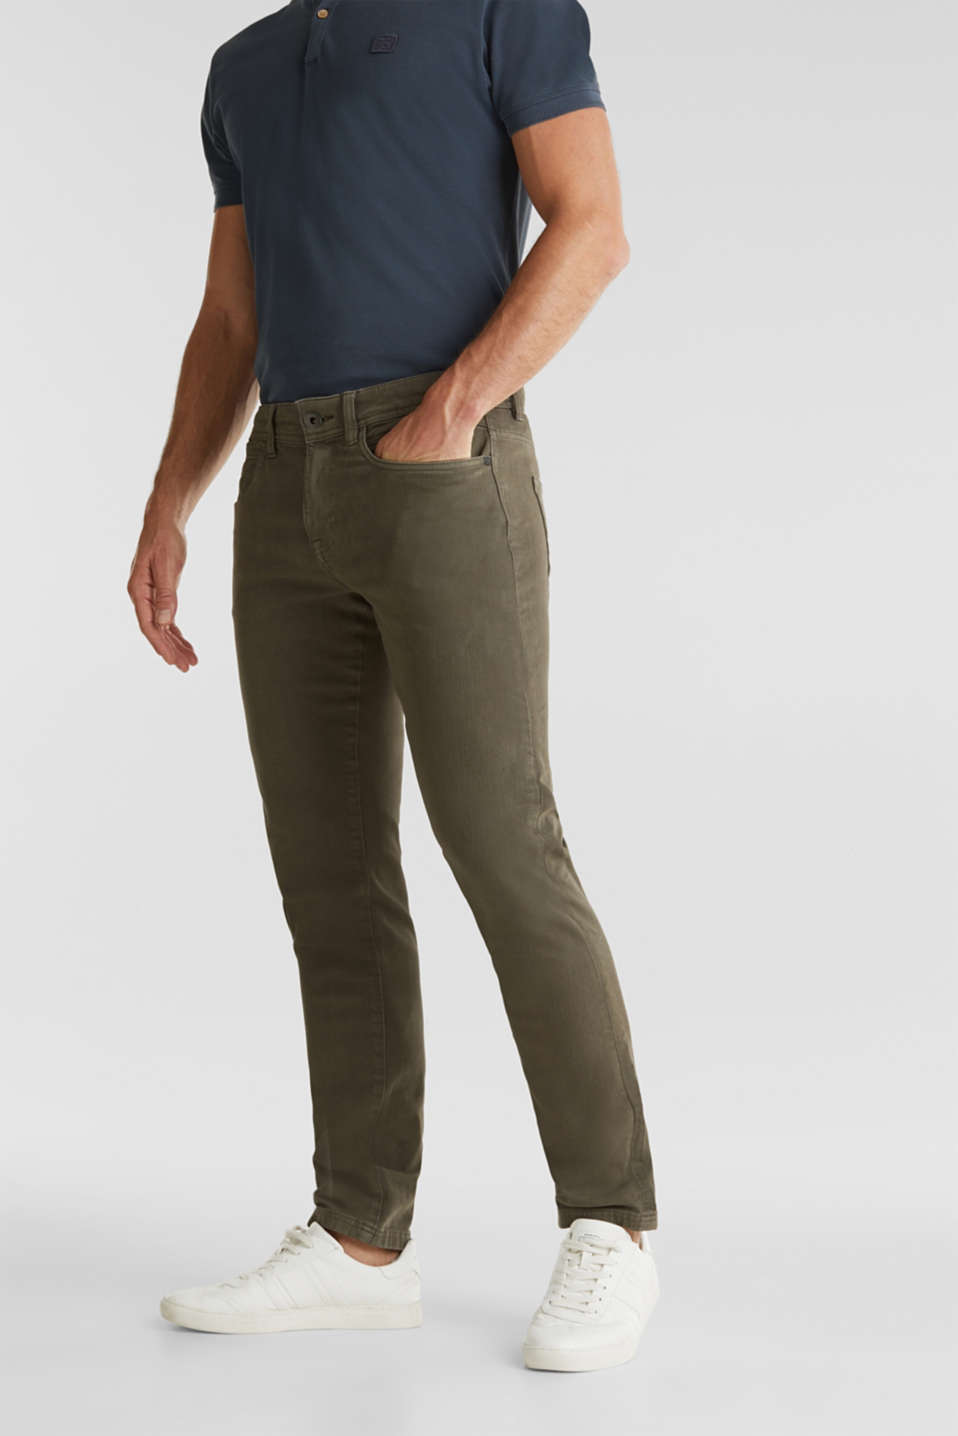 Esprit - EarthColors®: basic jeans